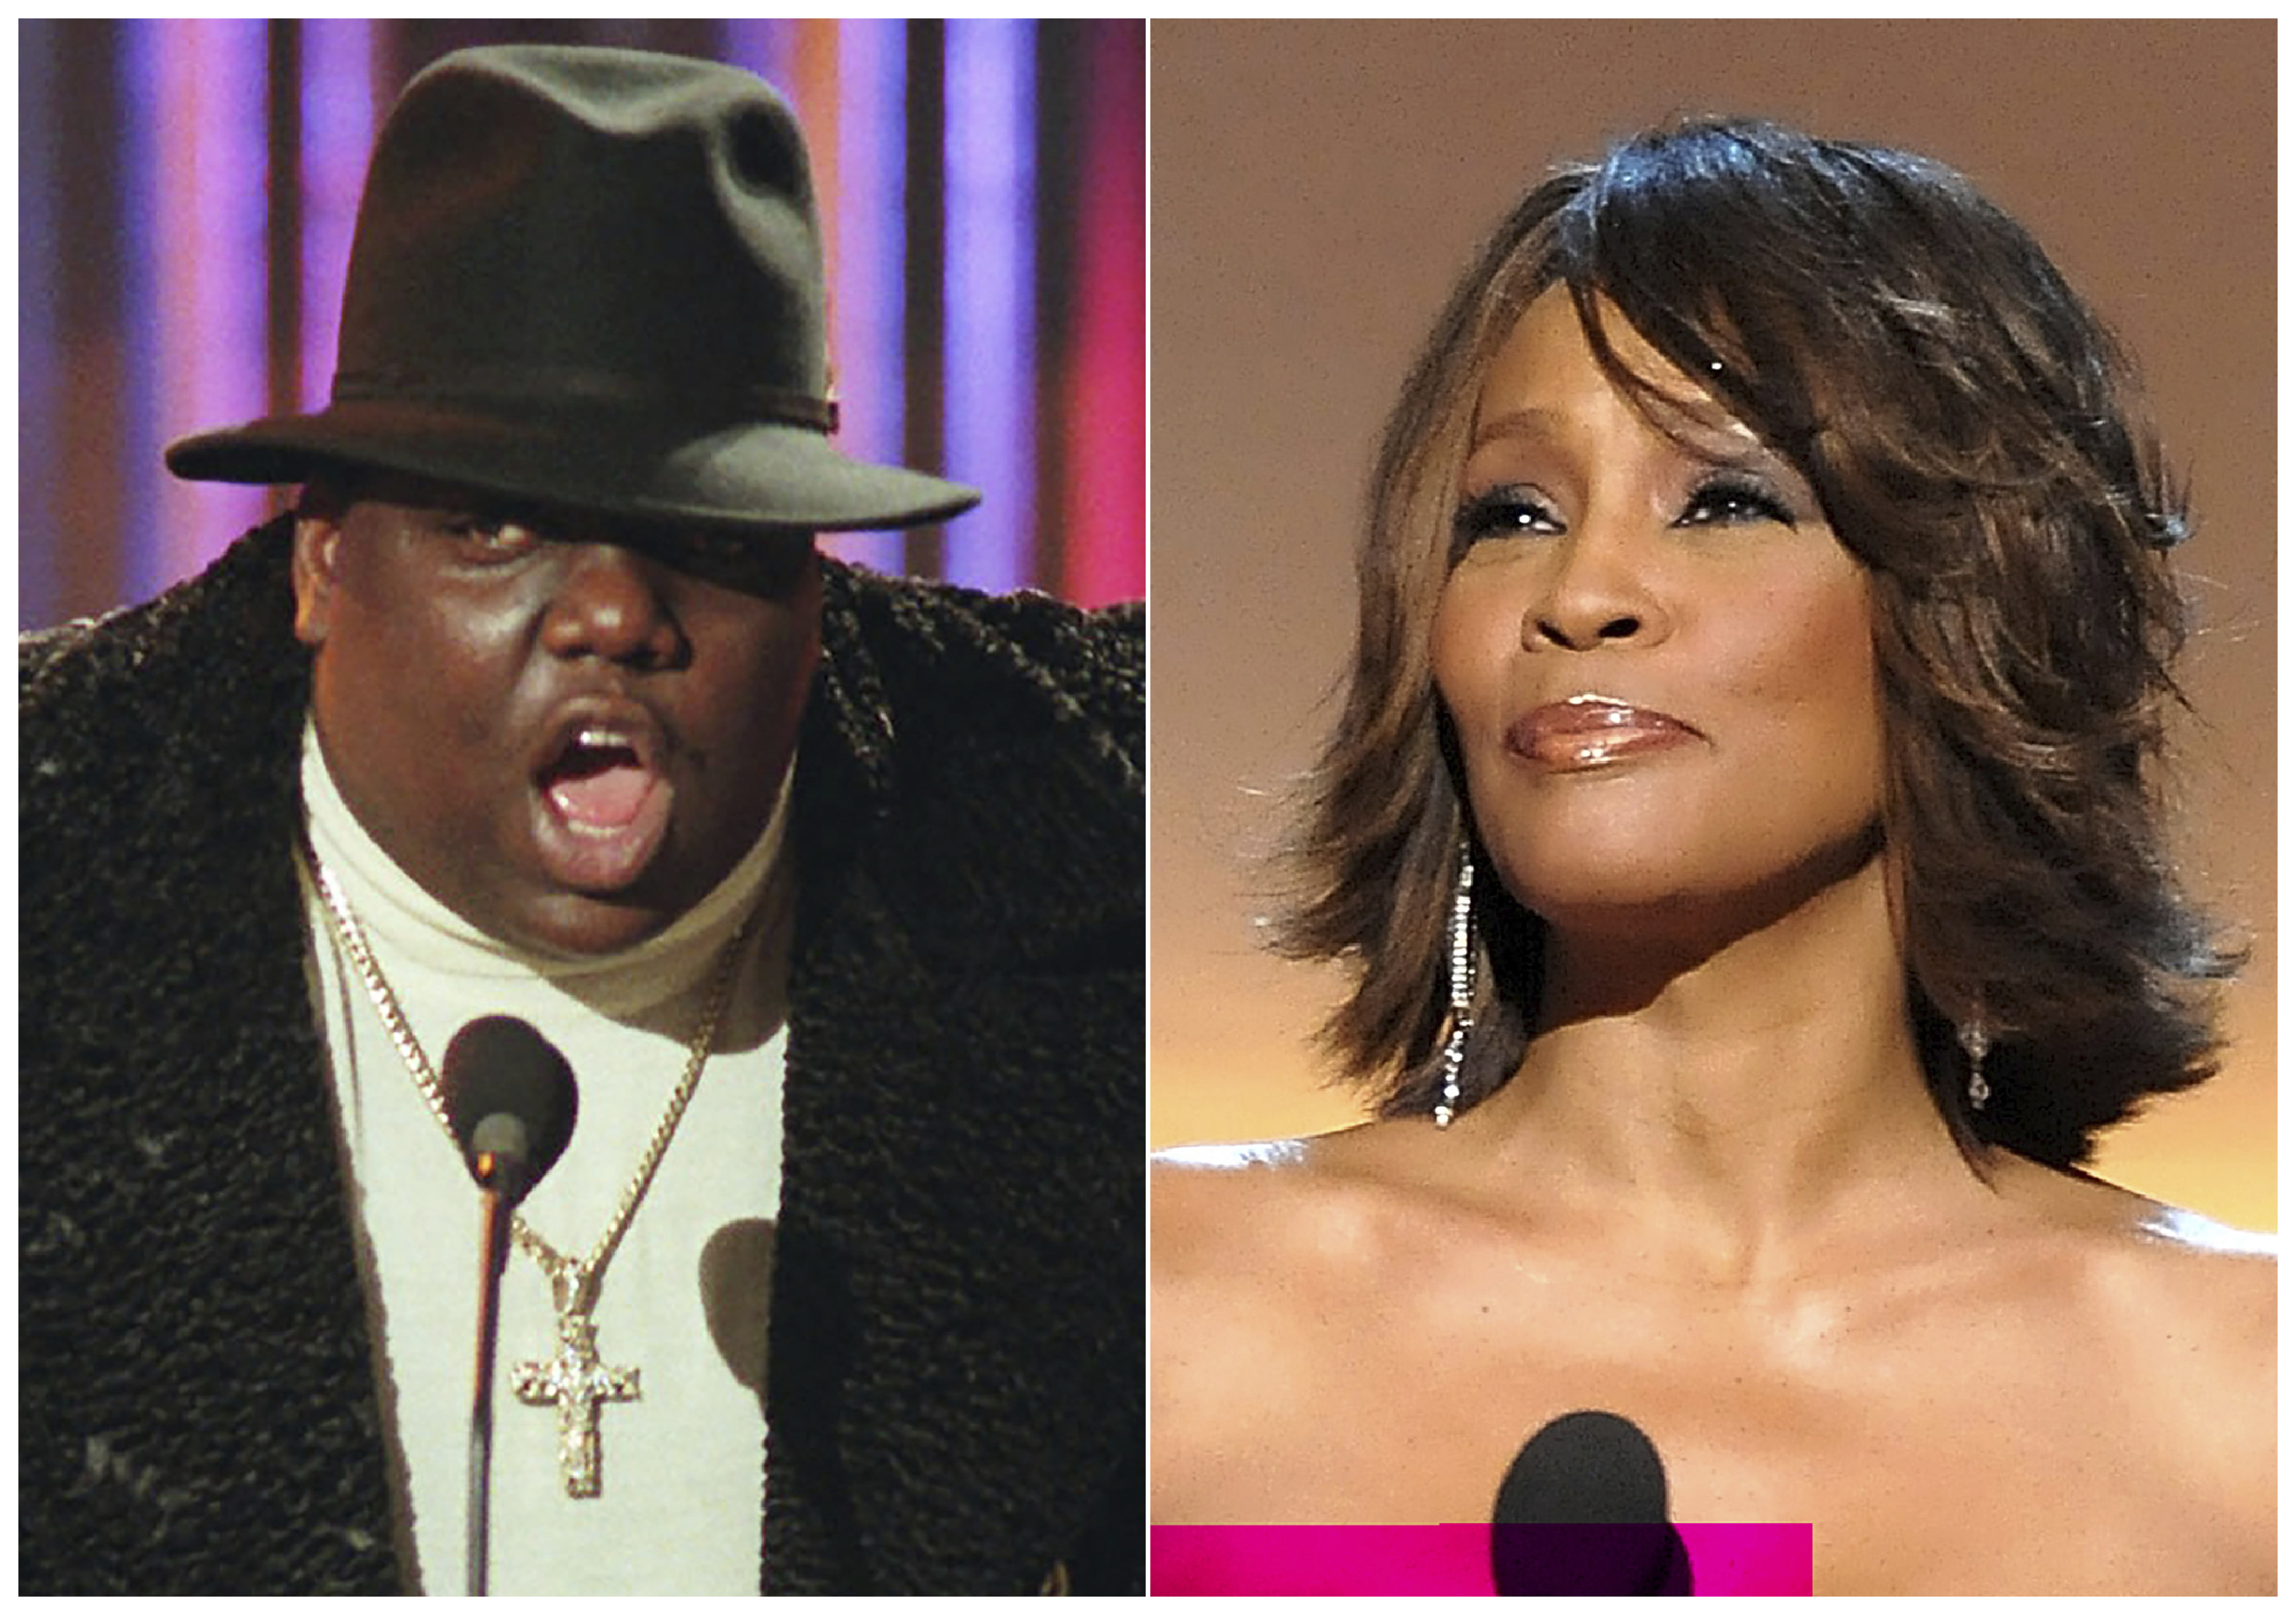 Notorious B.I.G. and Whitney Houston will be inducted into the Rock and Roll Hall of Fame's 2020 class.